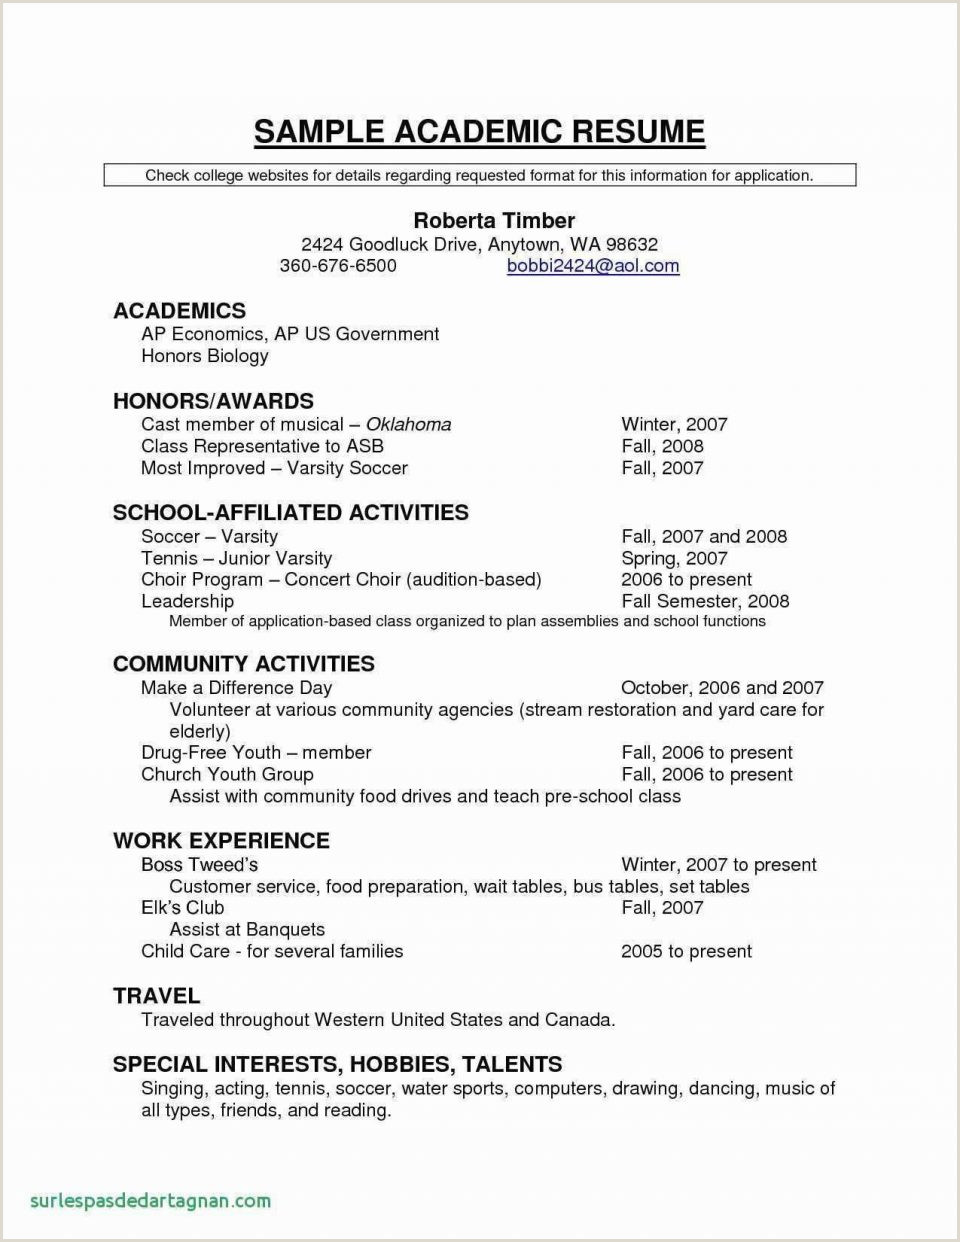 Teacher Resume Template Guide 20 Examples For Teaching Jobs